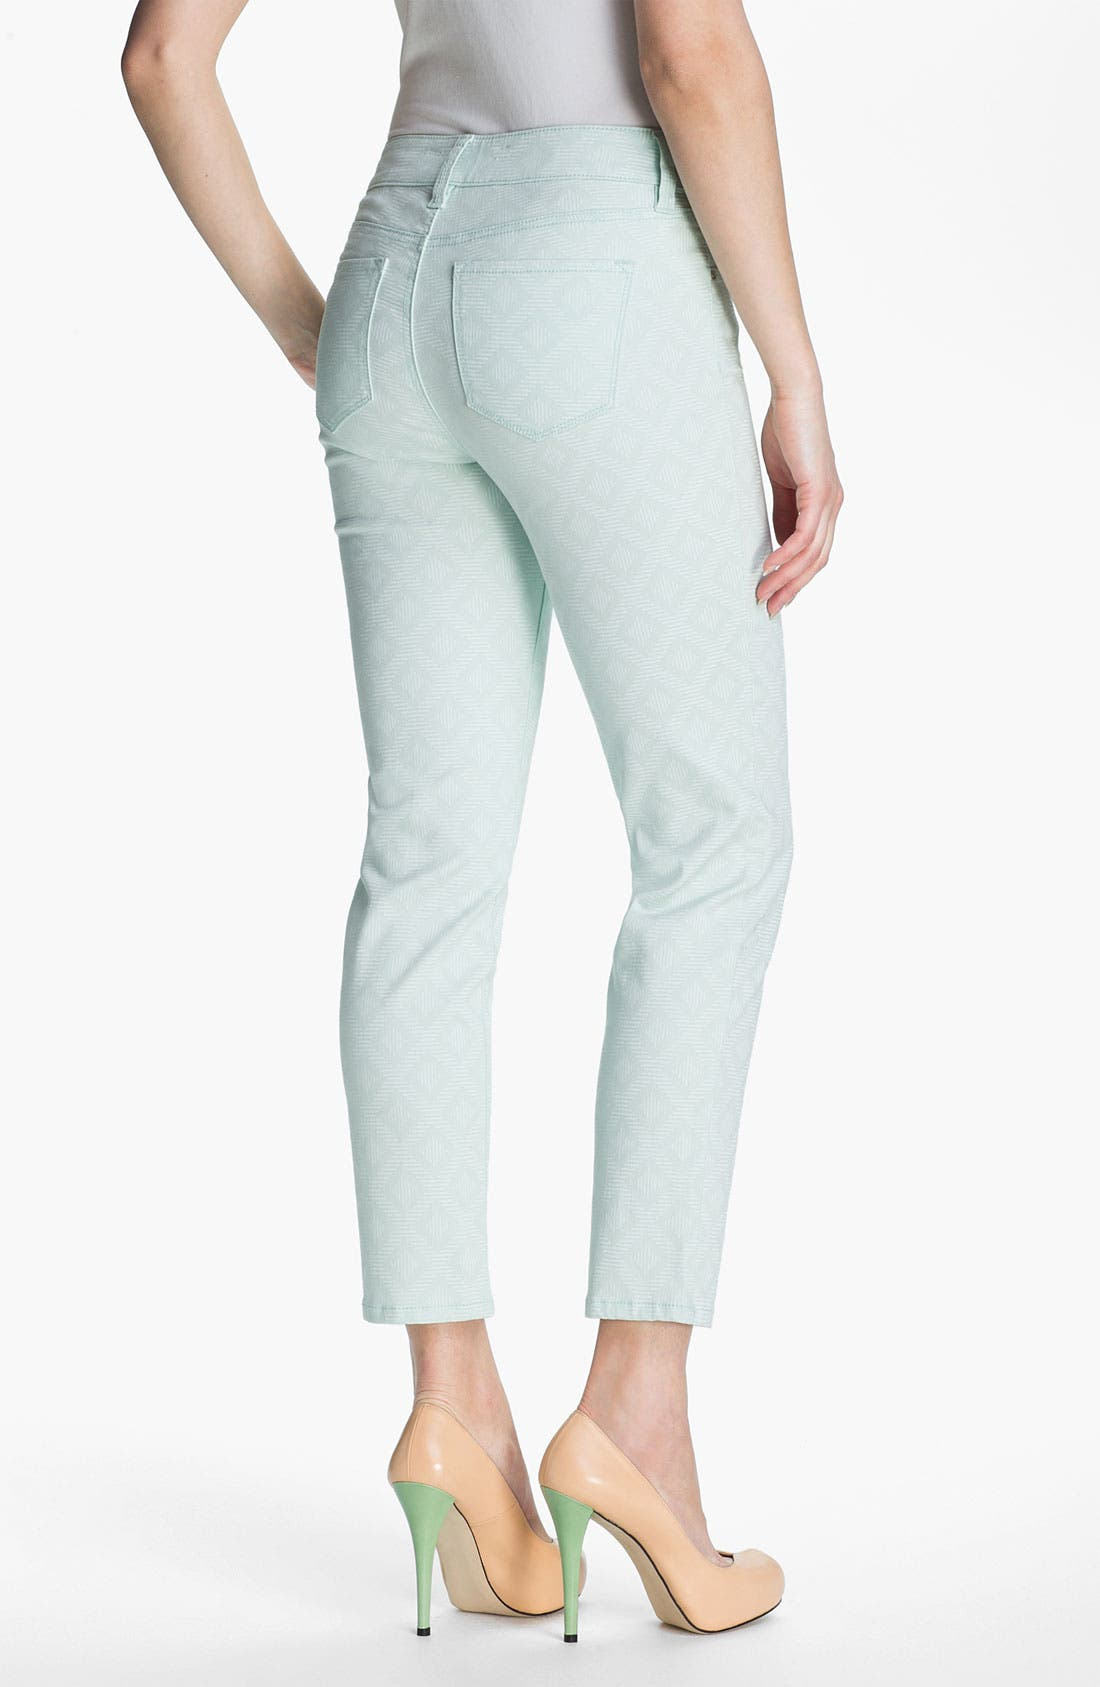 Alternate Image 3  - NYDJ 'Alisha - Jacquard' Skinny Stretch Ankle Jeans